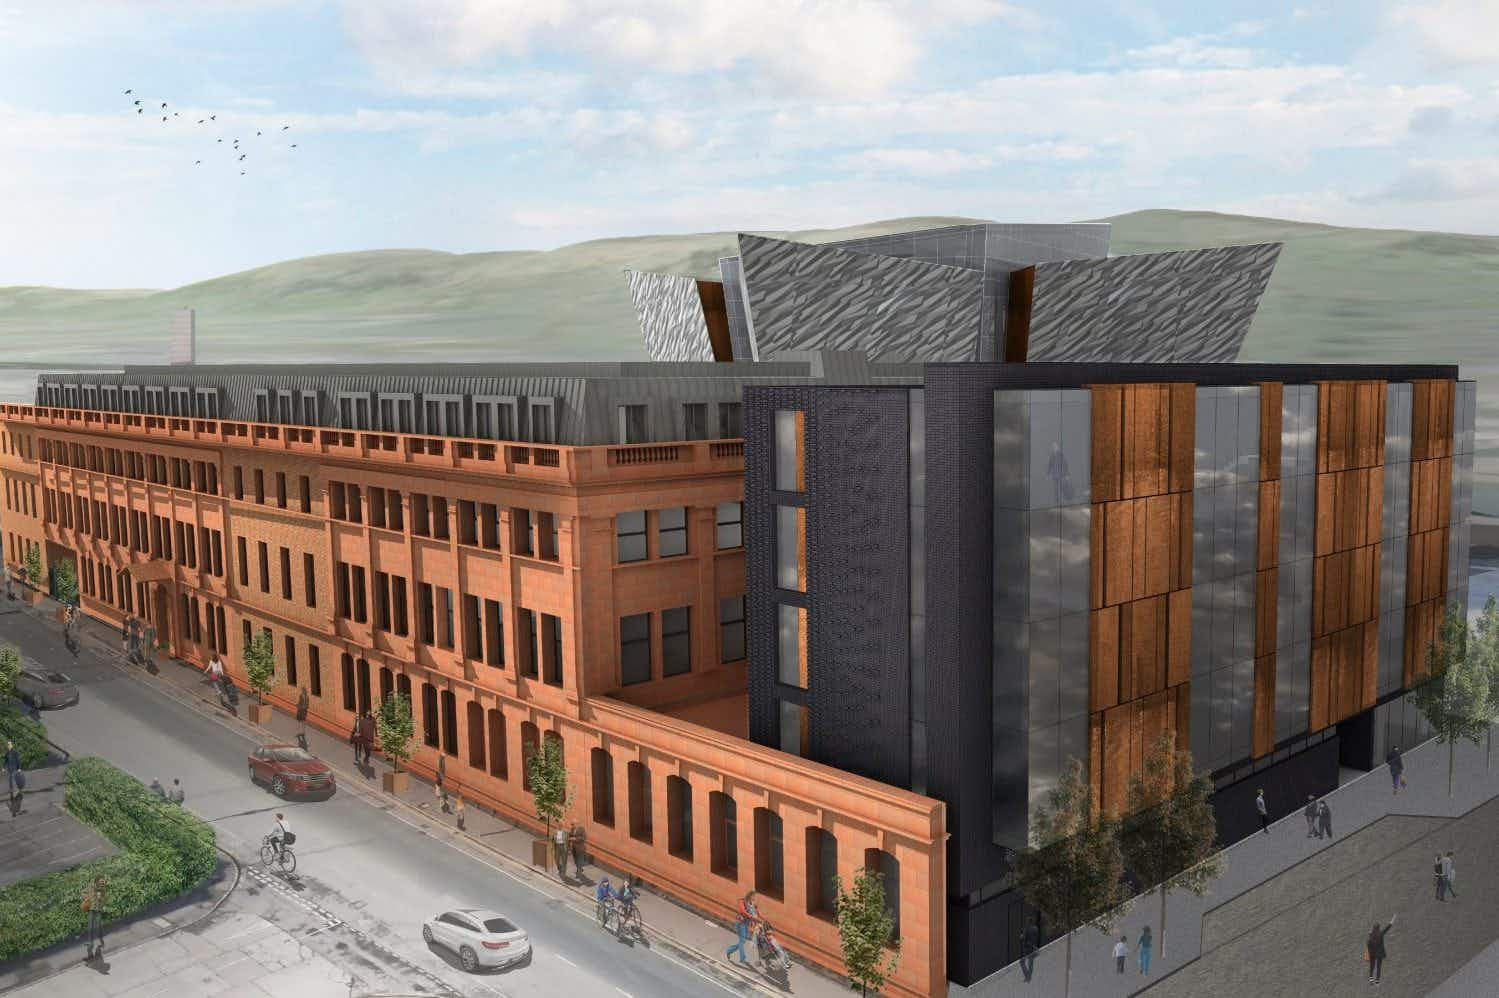 The Titanic Hotel Belfast is set to open in the building where the ill-fated liner was designed